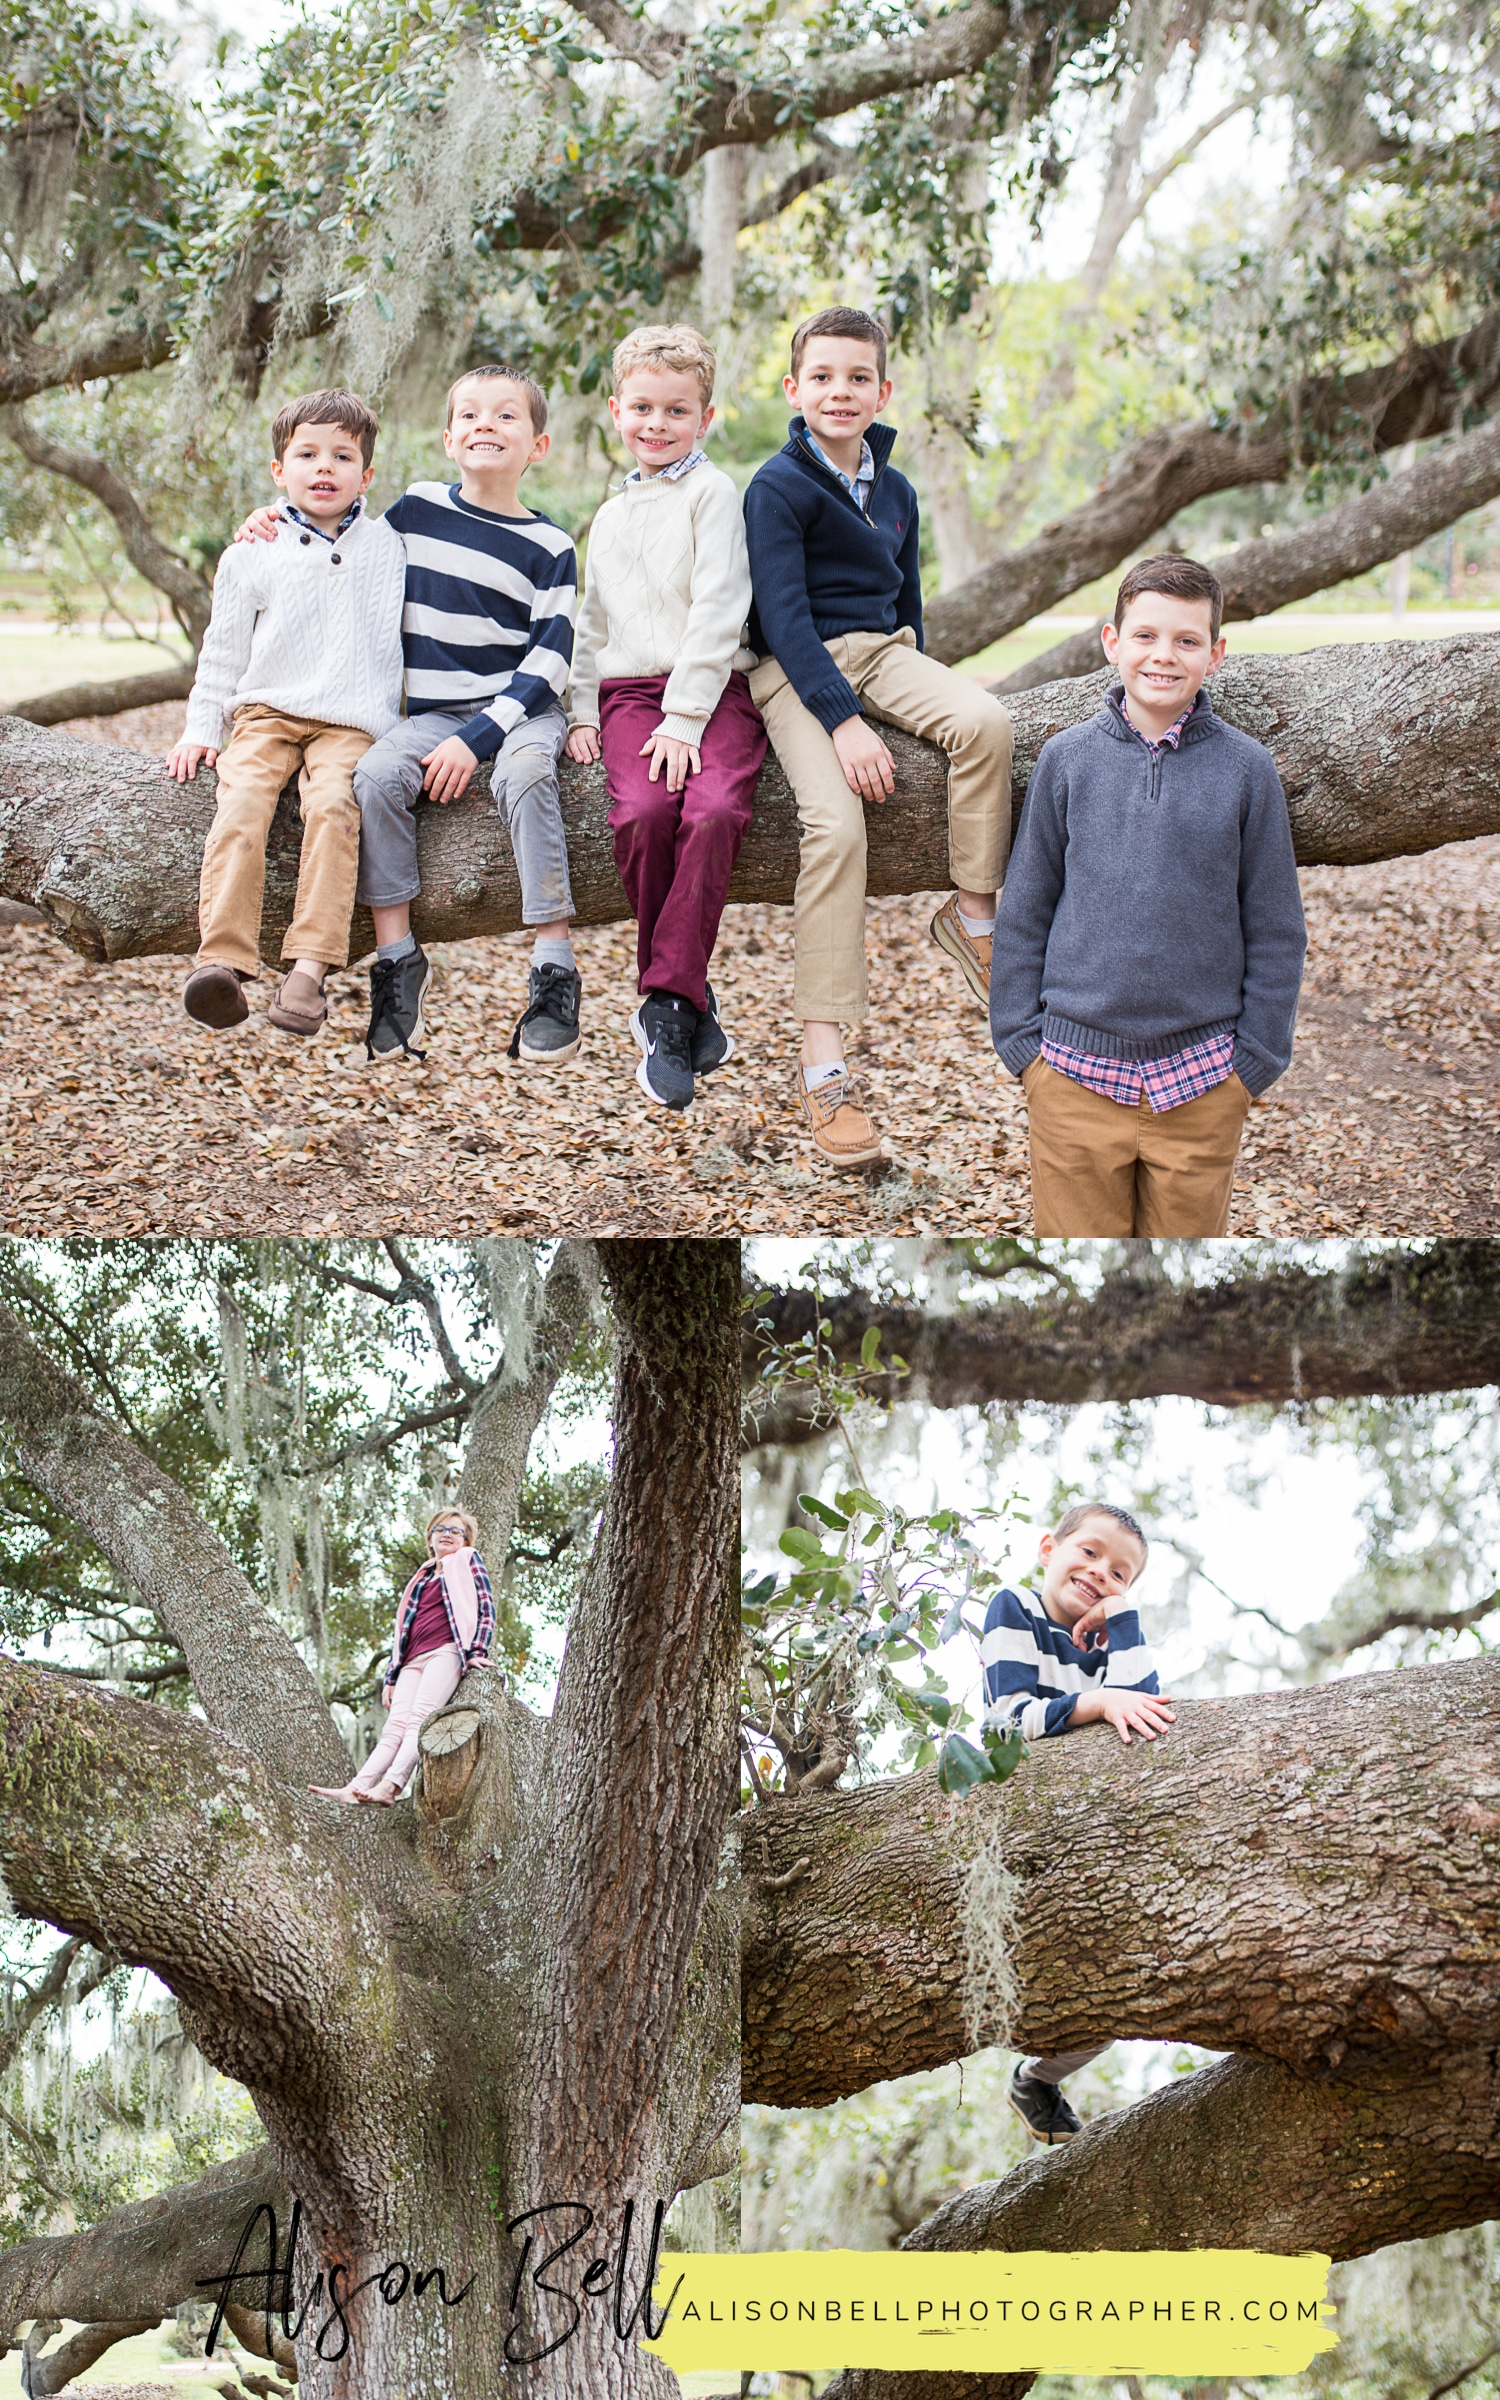 Extended family photography session in Hampton Park, Charleston South Carolina by Alison Bell, Photographer